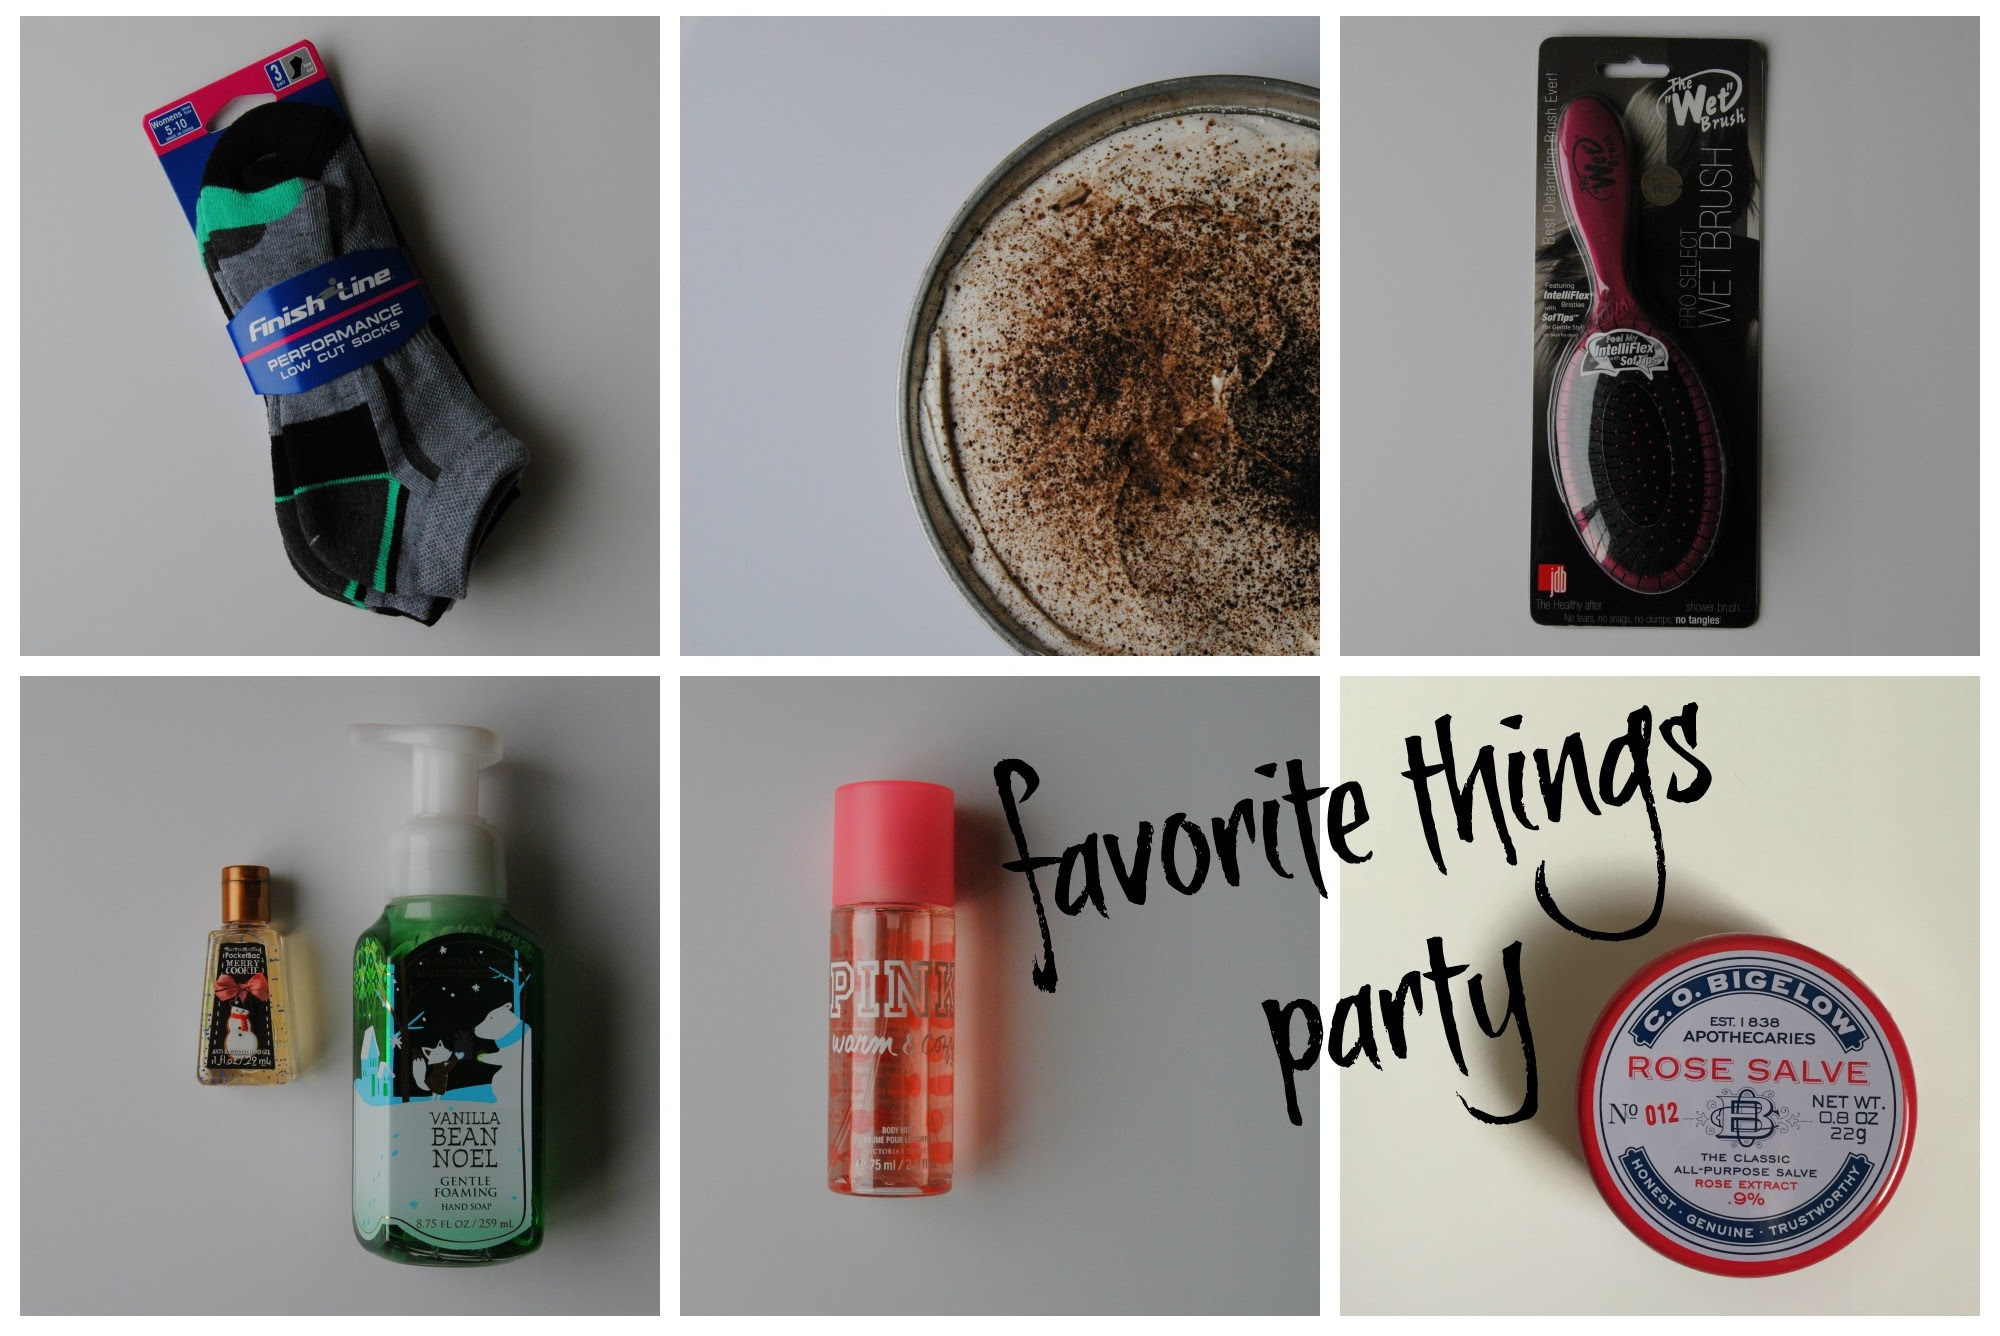 Annual Favorite Things Party